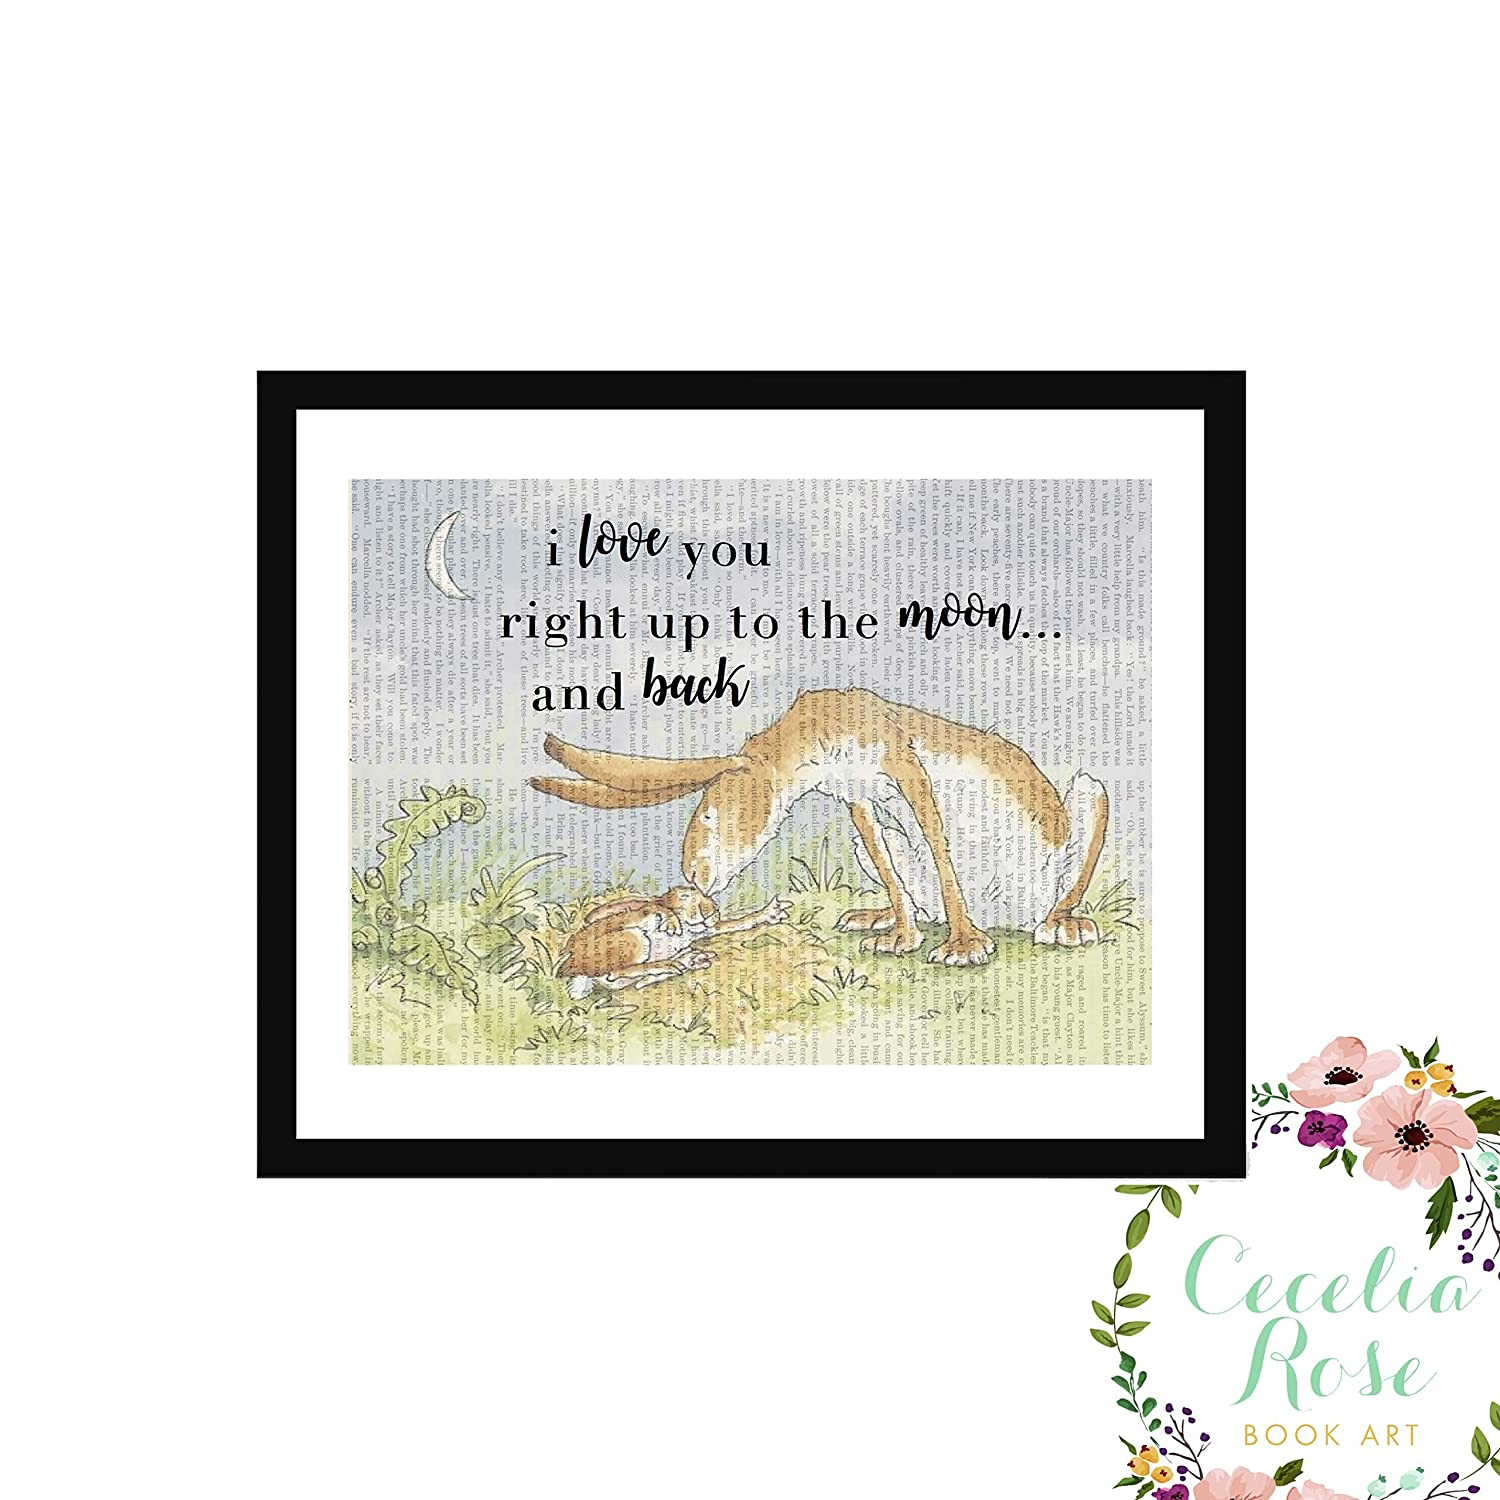 I Love You Right Up To The Moon And Back Sam McBratney Guess How Much I Love You Farmhouse Style Upcycled Vintage Book Page Art Unframed Print